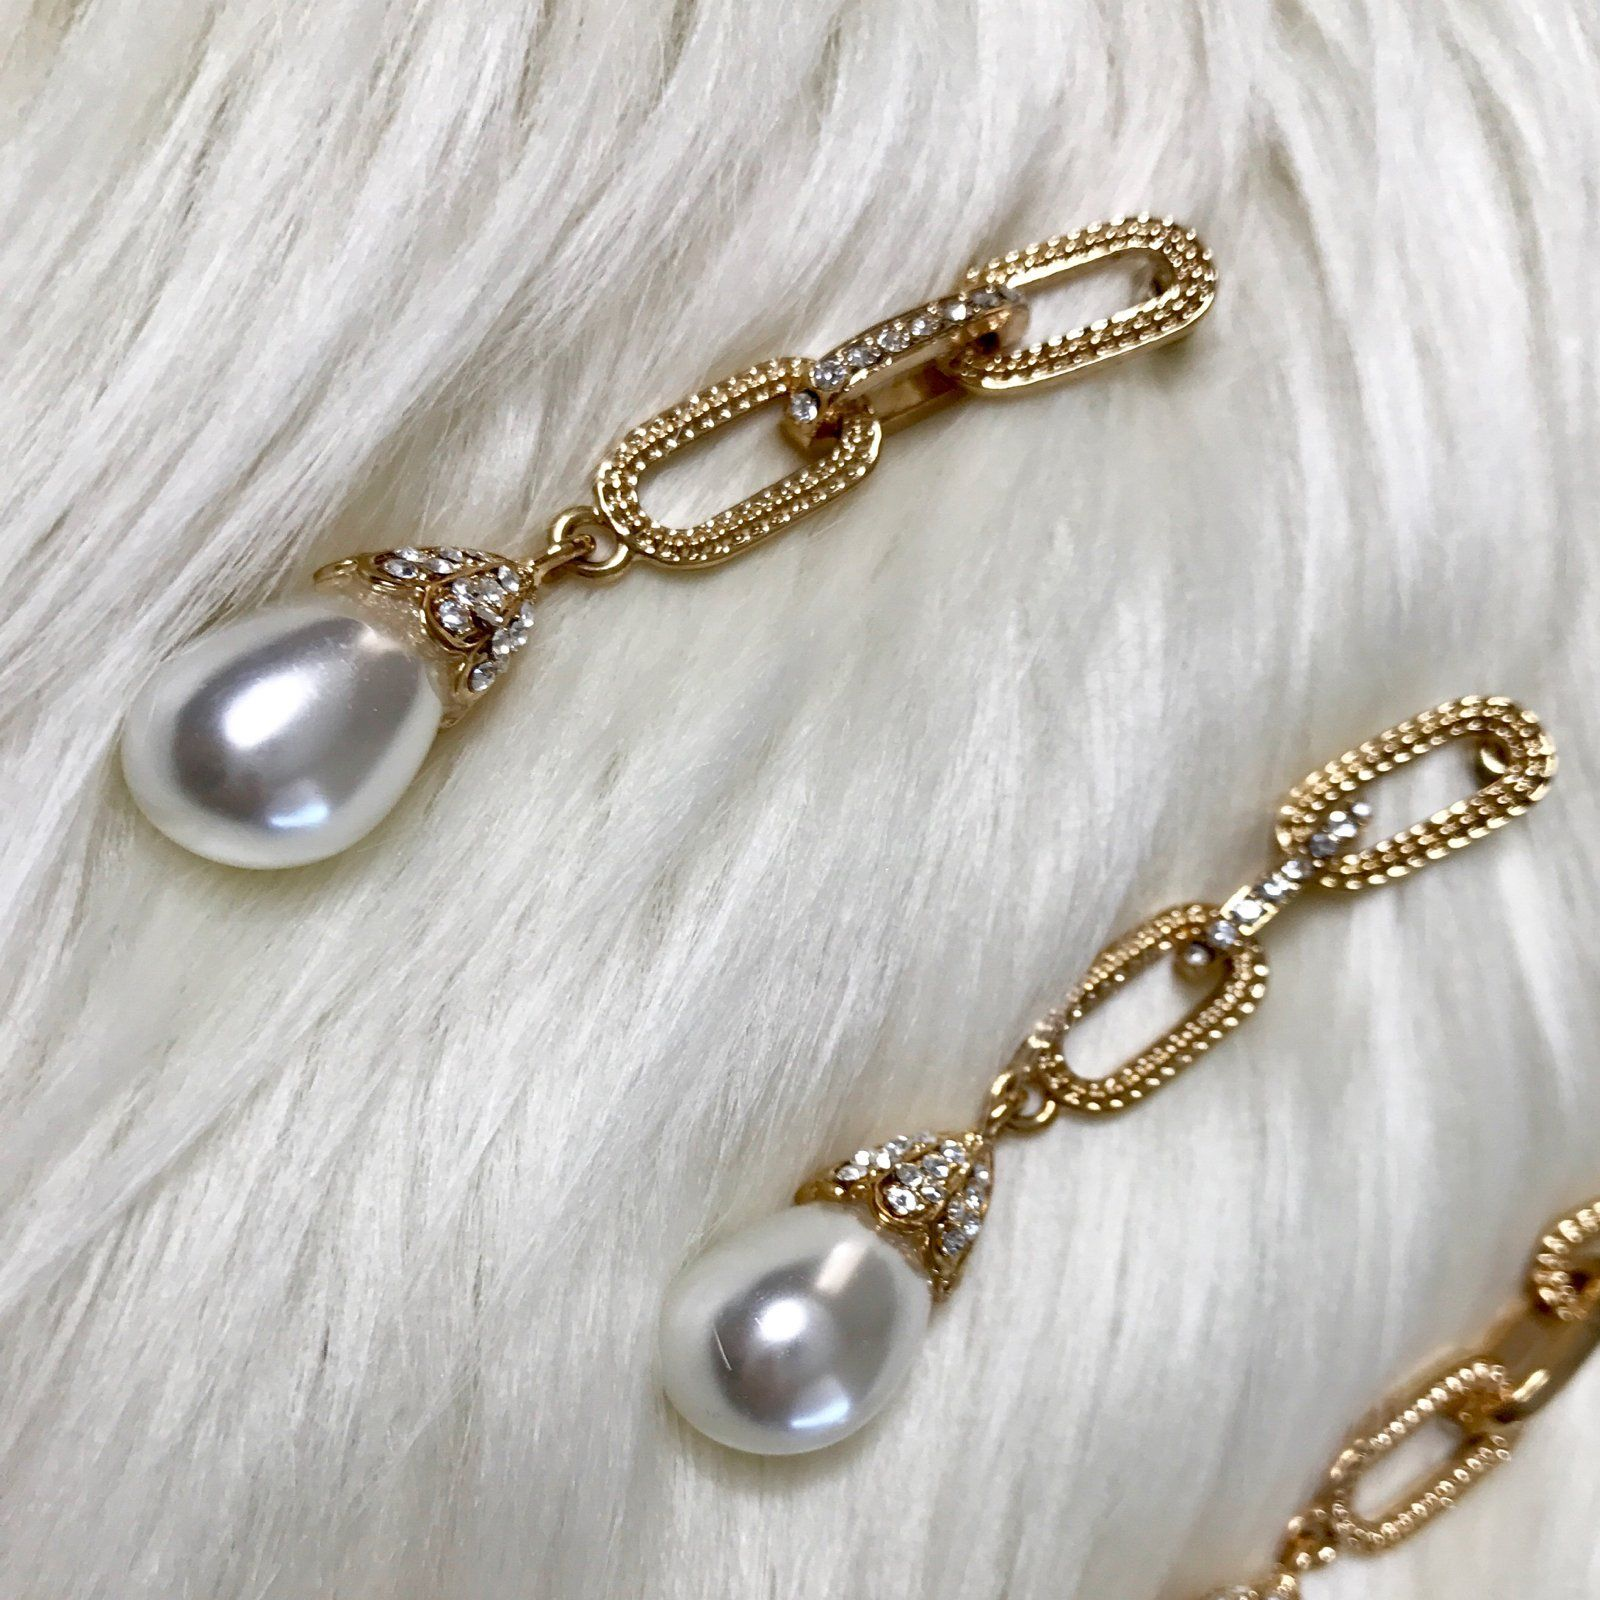 Gold chain drop earrings with pearls at each end the perfect pair